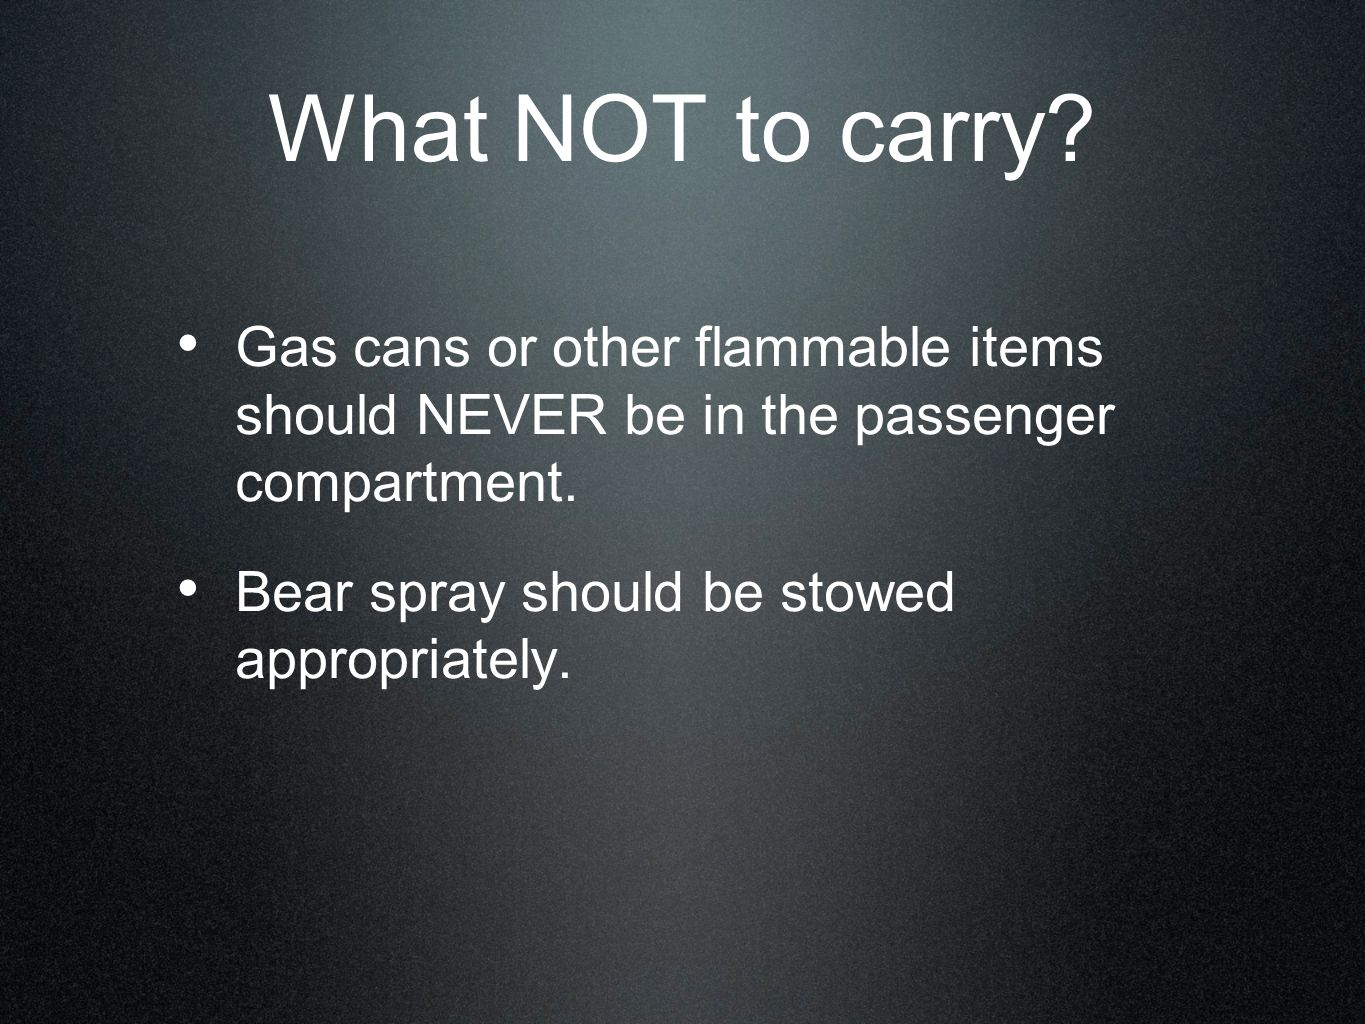 What NOT to carry Gas cans or other flammable items should NEVER be in the passenger compartment.